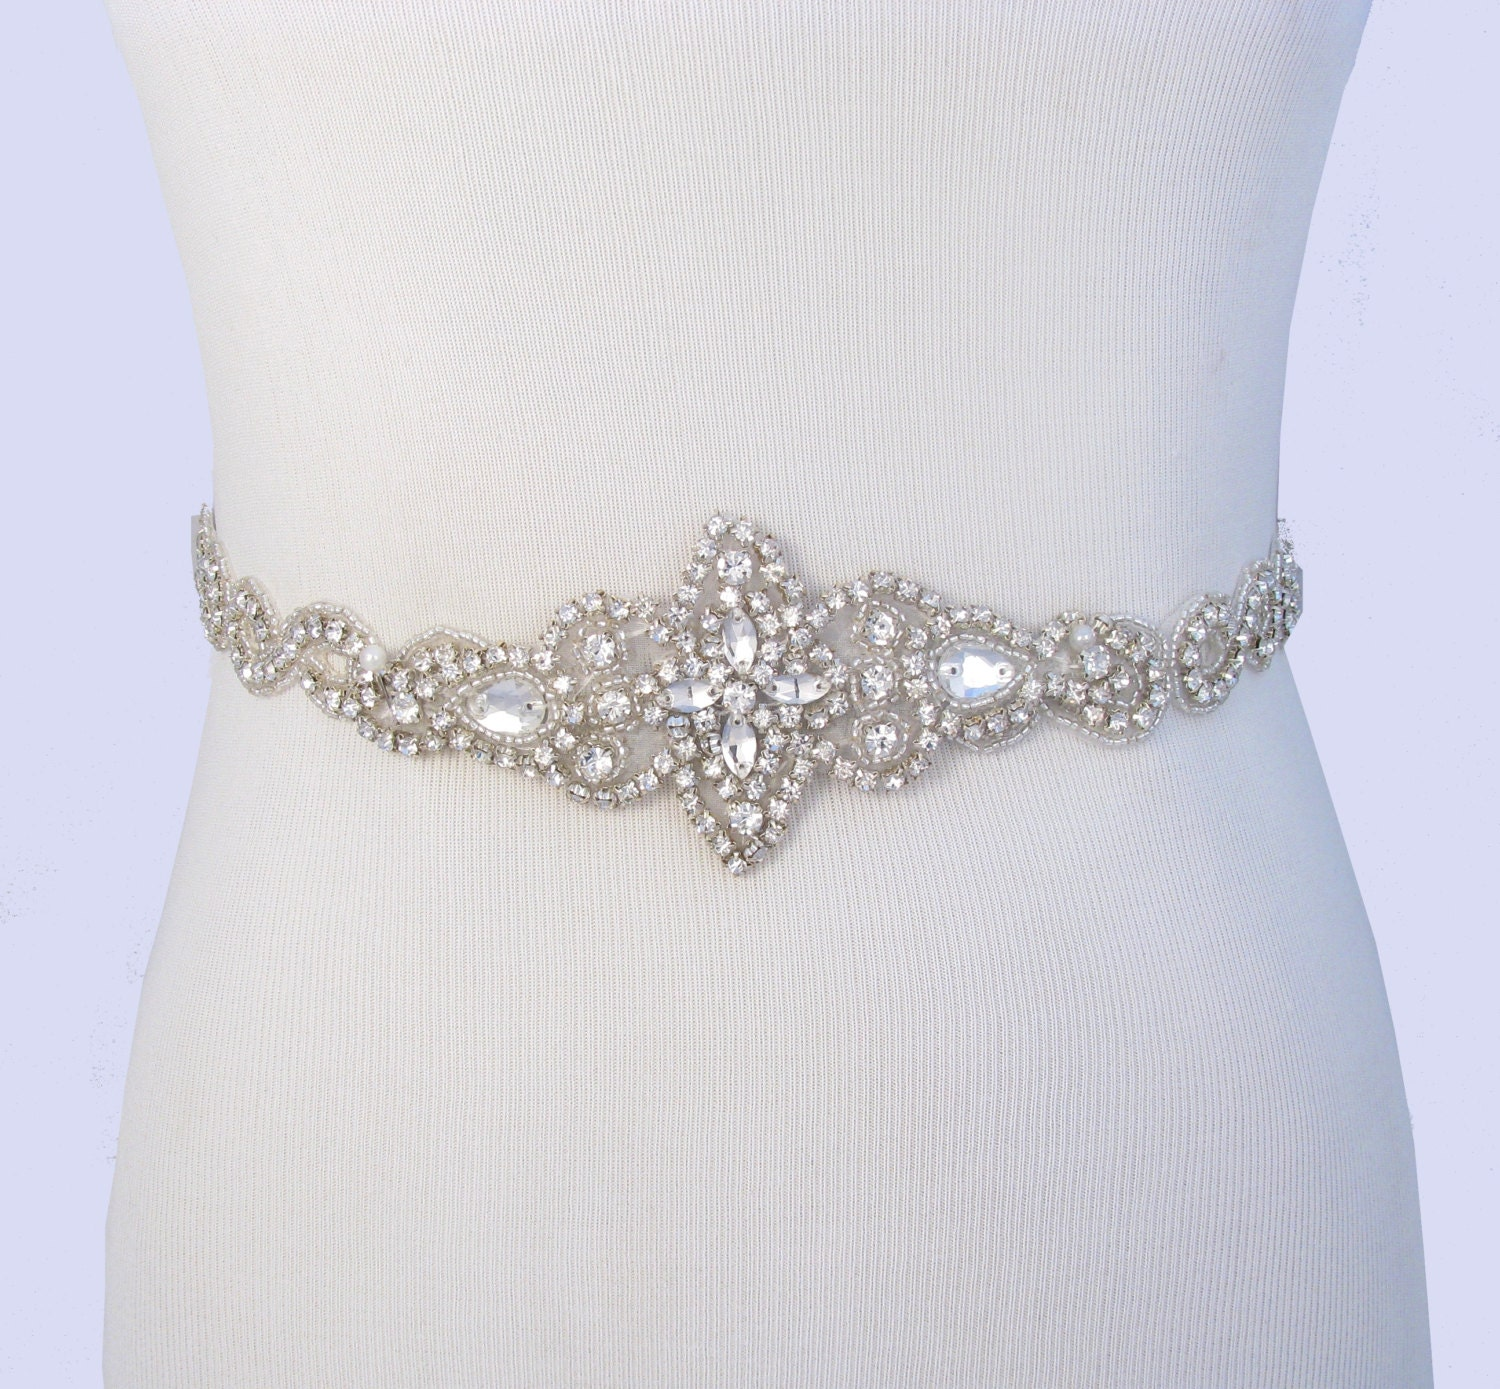 Bridal belt crystal rhinestone wedding dress sash jeweled for Wedding dress sashes with crystals